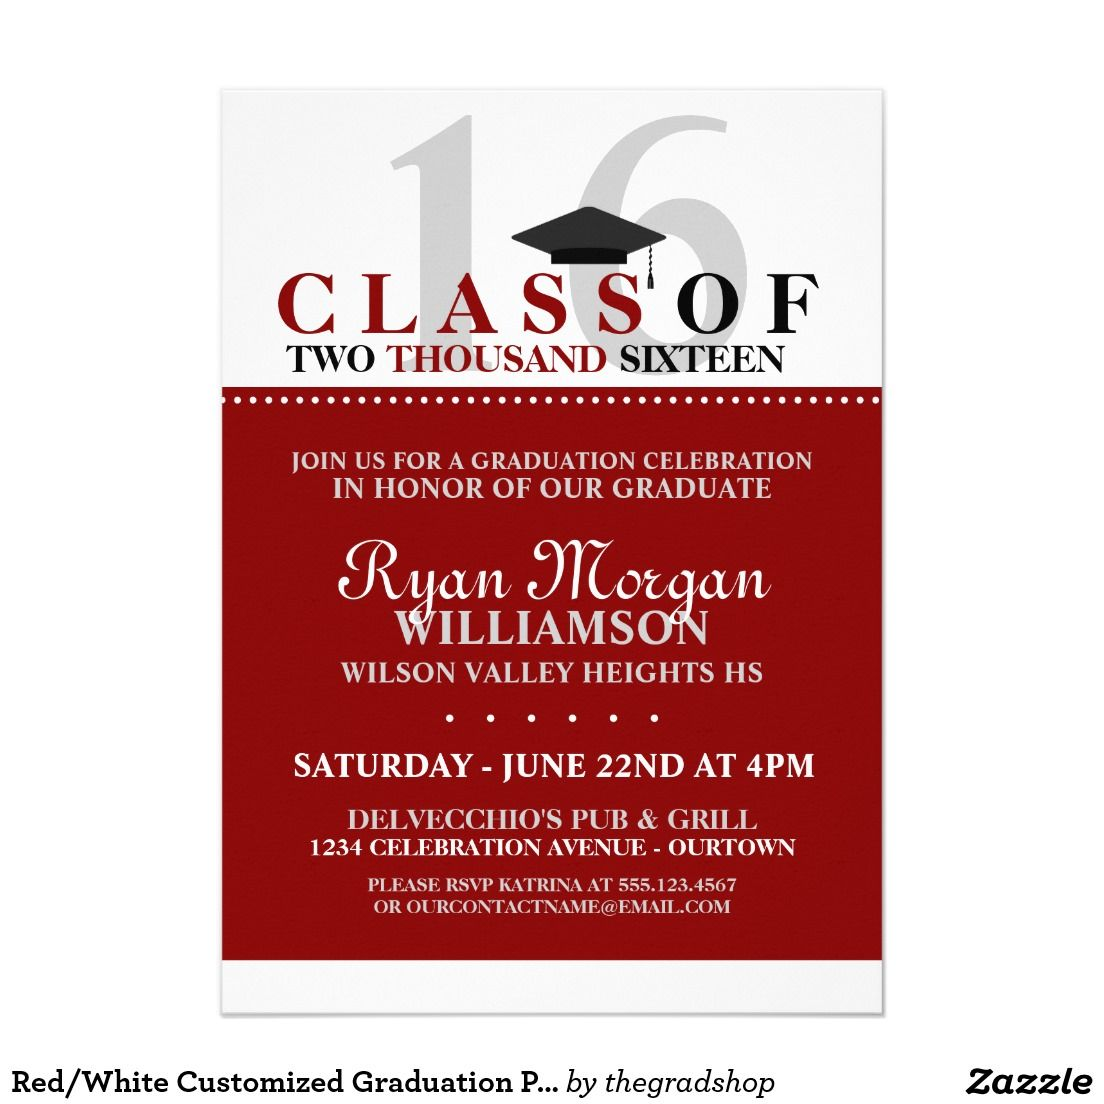 Redwhite customized graduation party invitation graduacion redwhite customized graduation party invitation filmwisefo Image collections